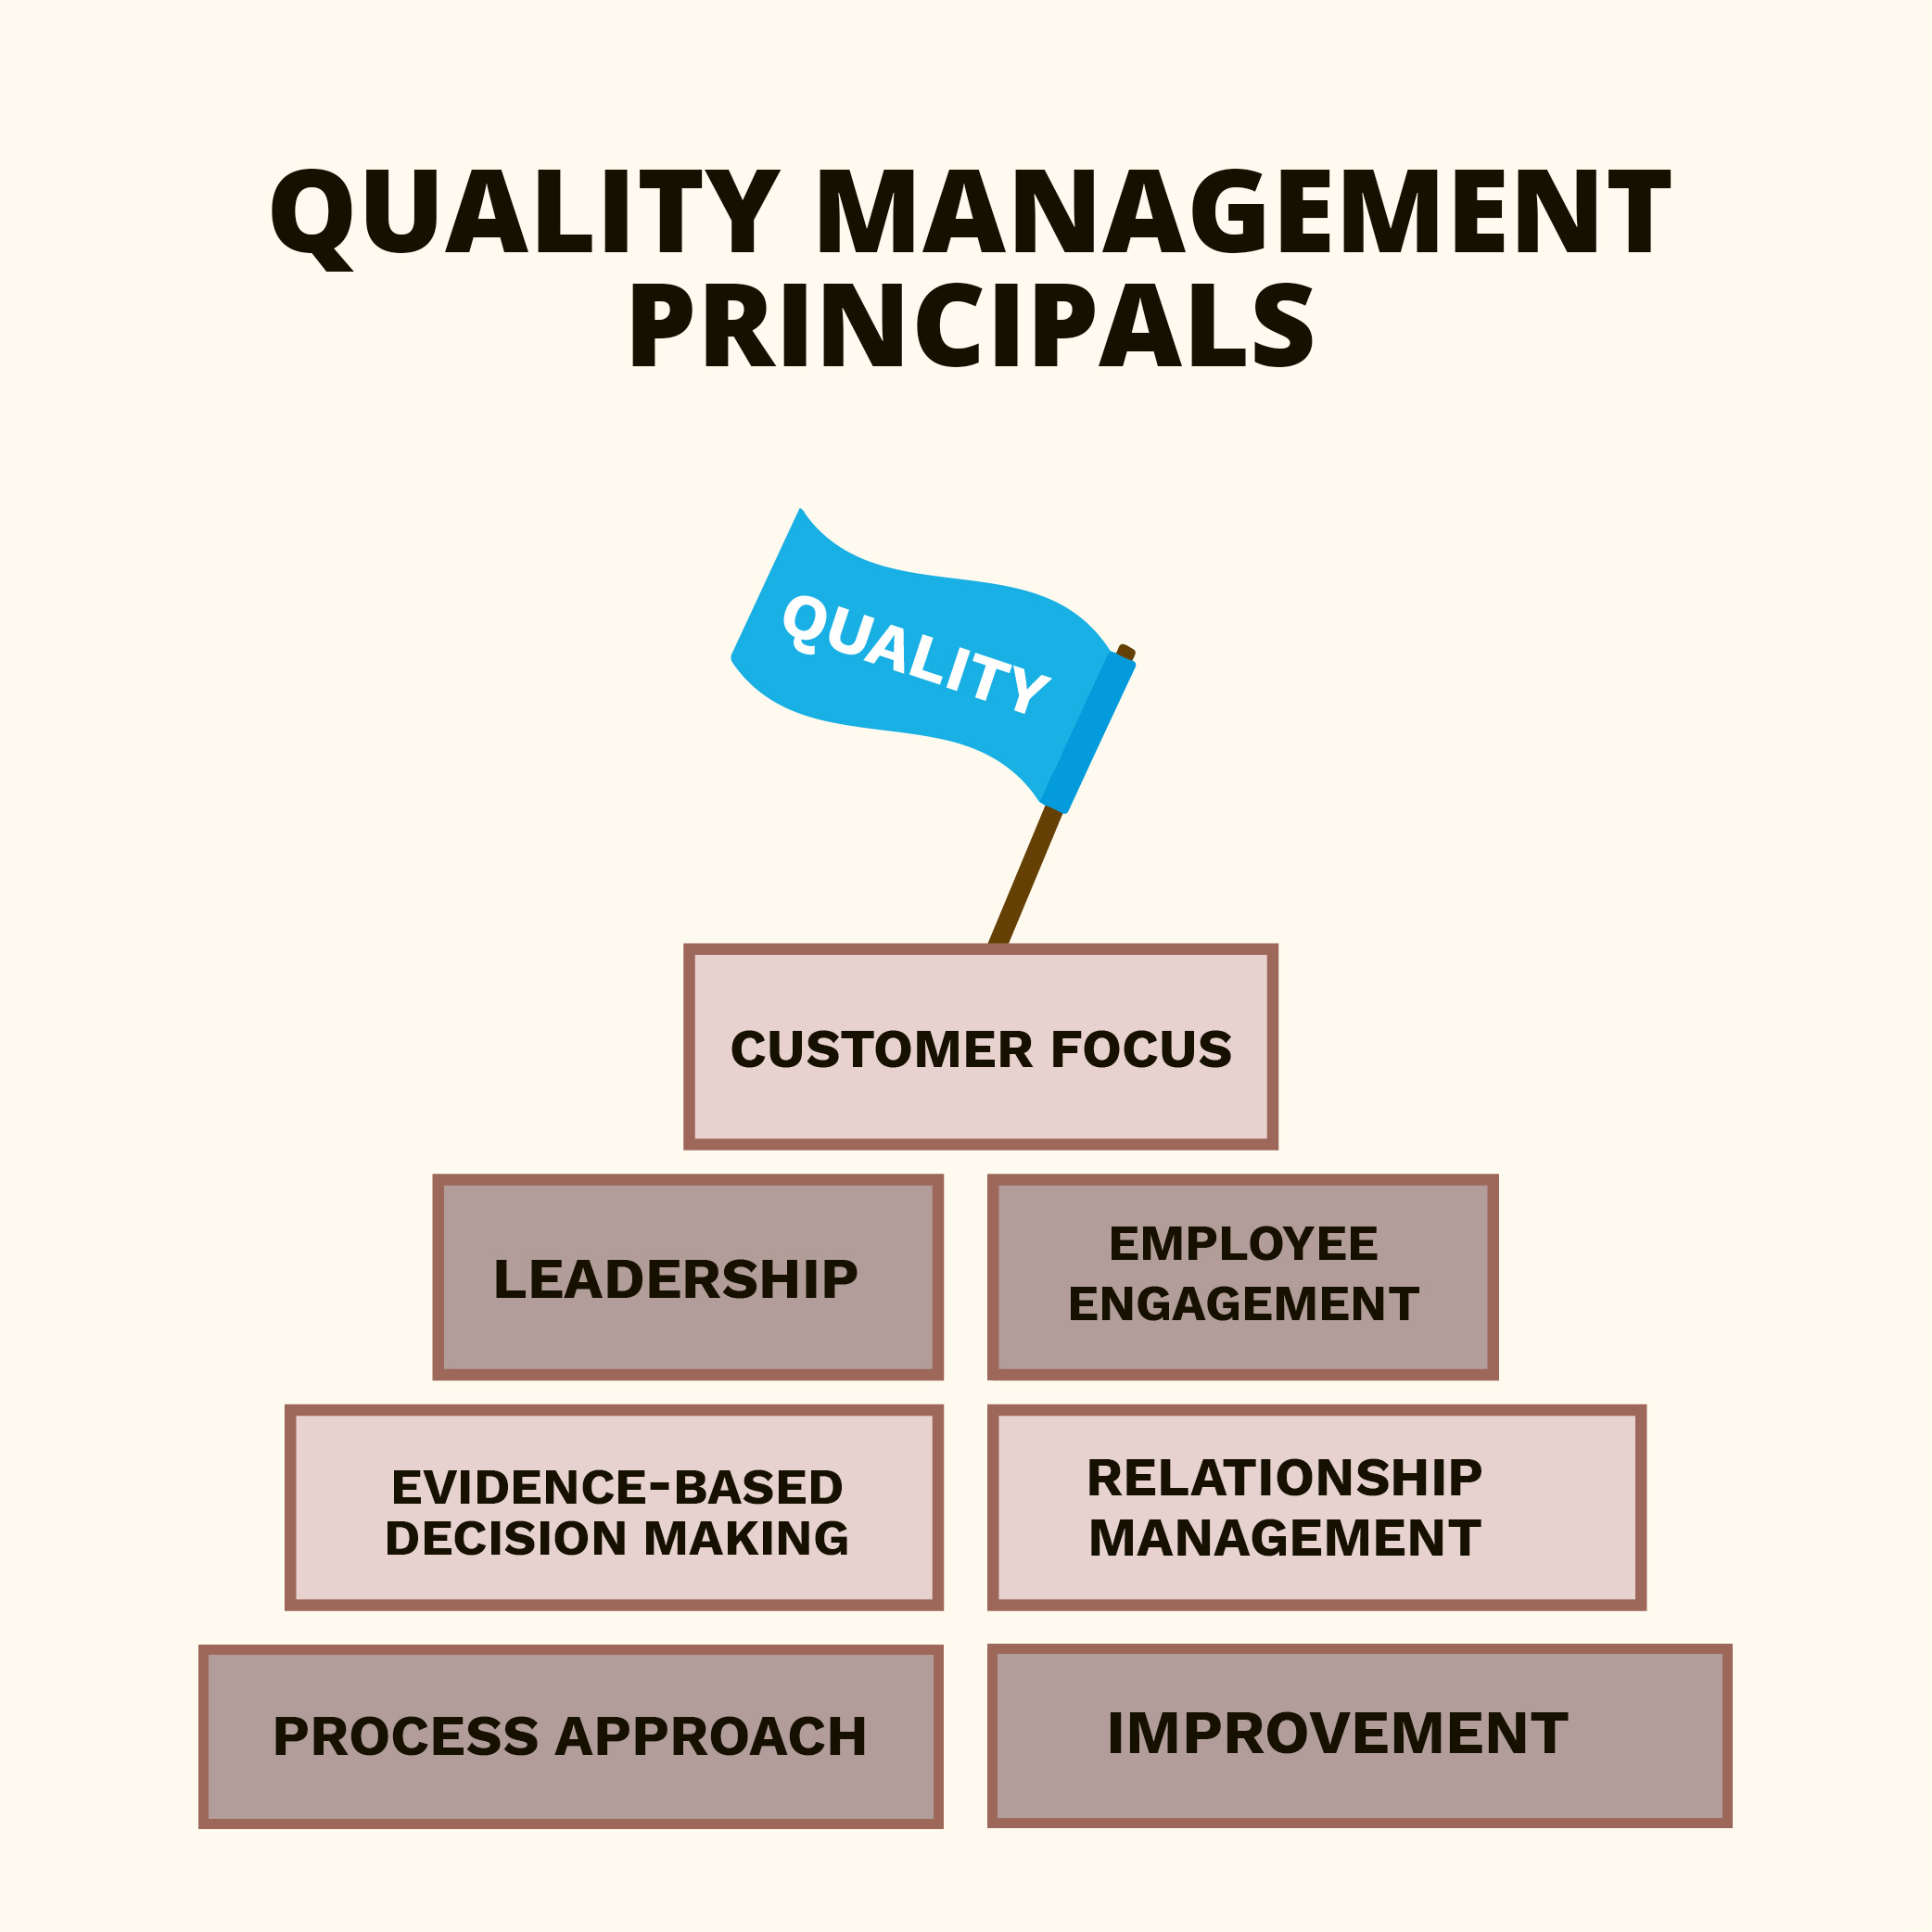 Management System Services Quality Principals